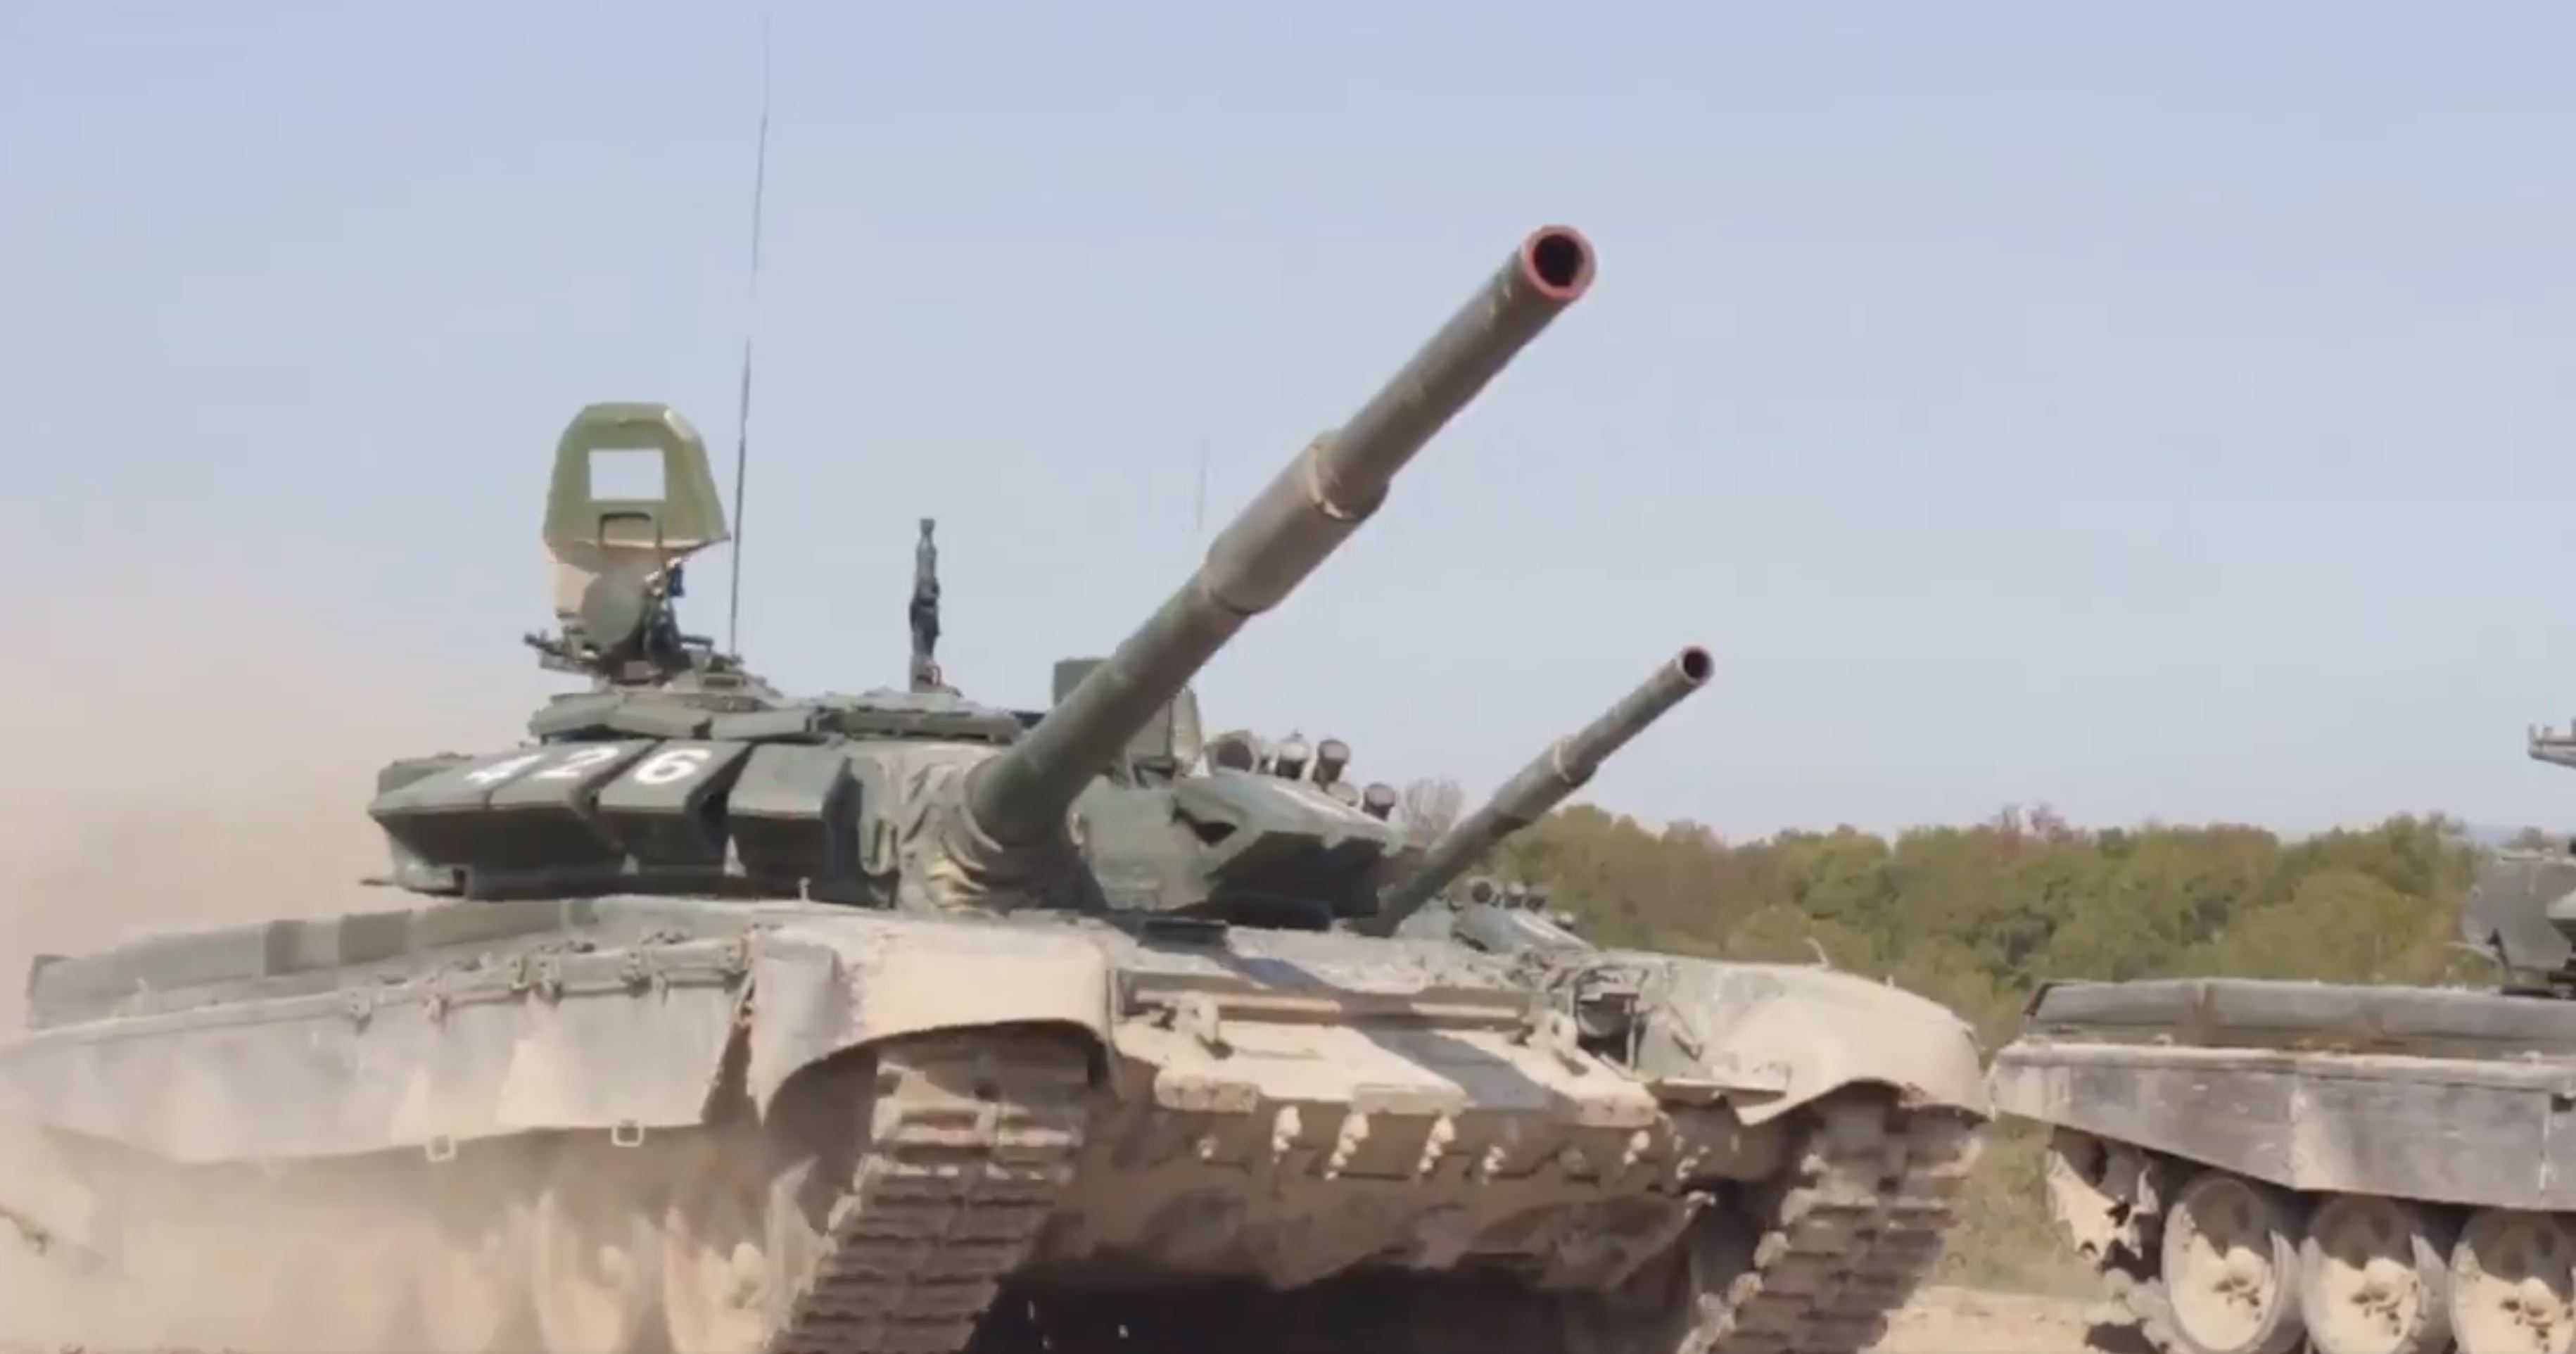 T-72B3s assigned to VDV assault battalion